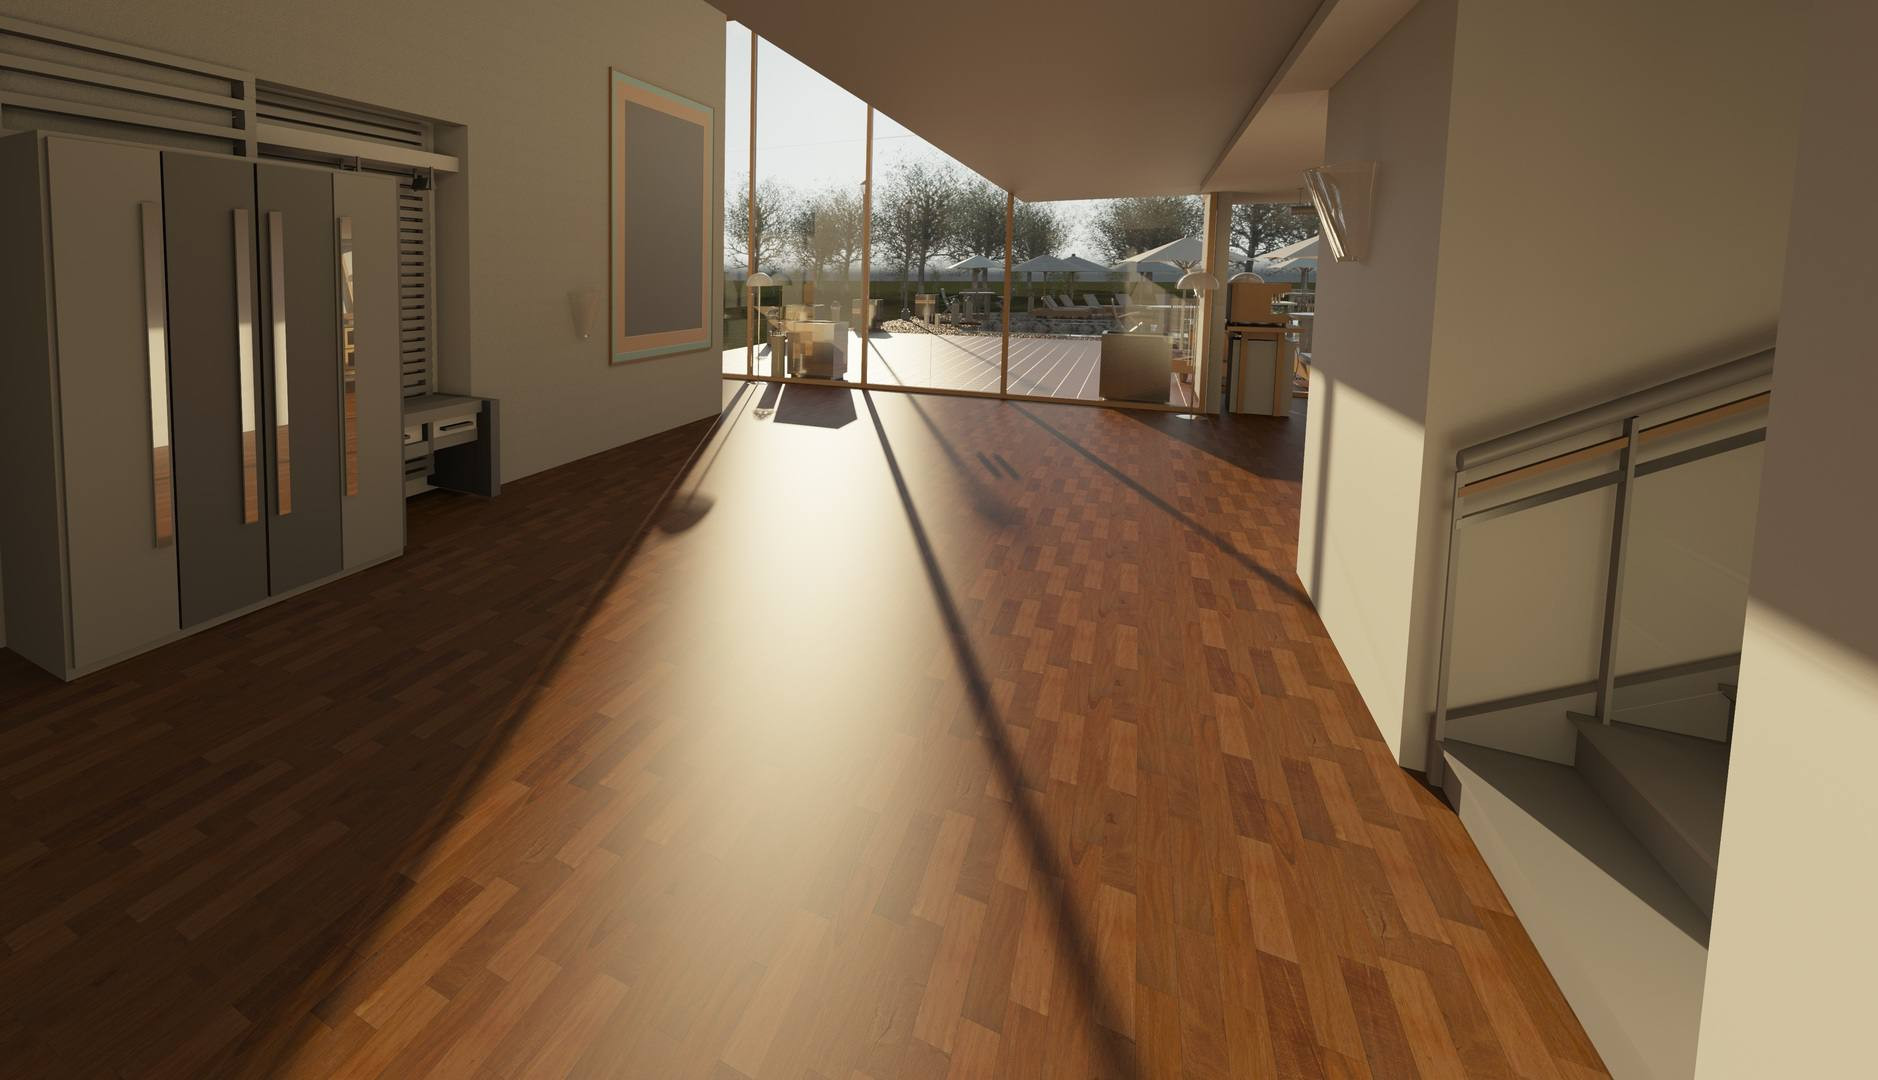 how to put down hardwood floors of common flooring types currently used in renovation and building with architecture wood house floor interior window 917178 pxhere com 5ba27a2cc9e77c00503b27b9